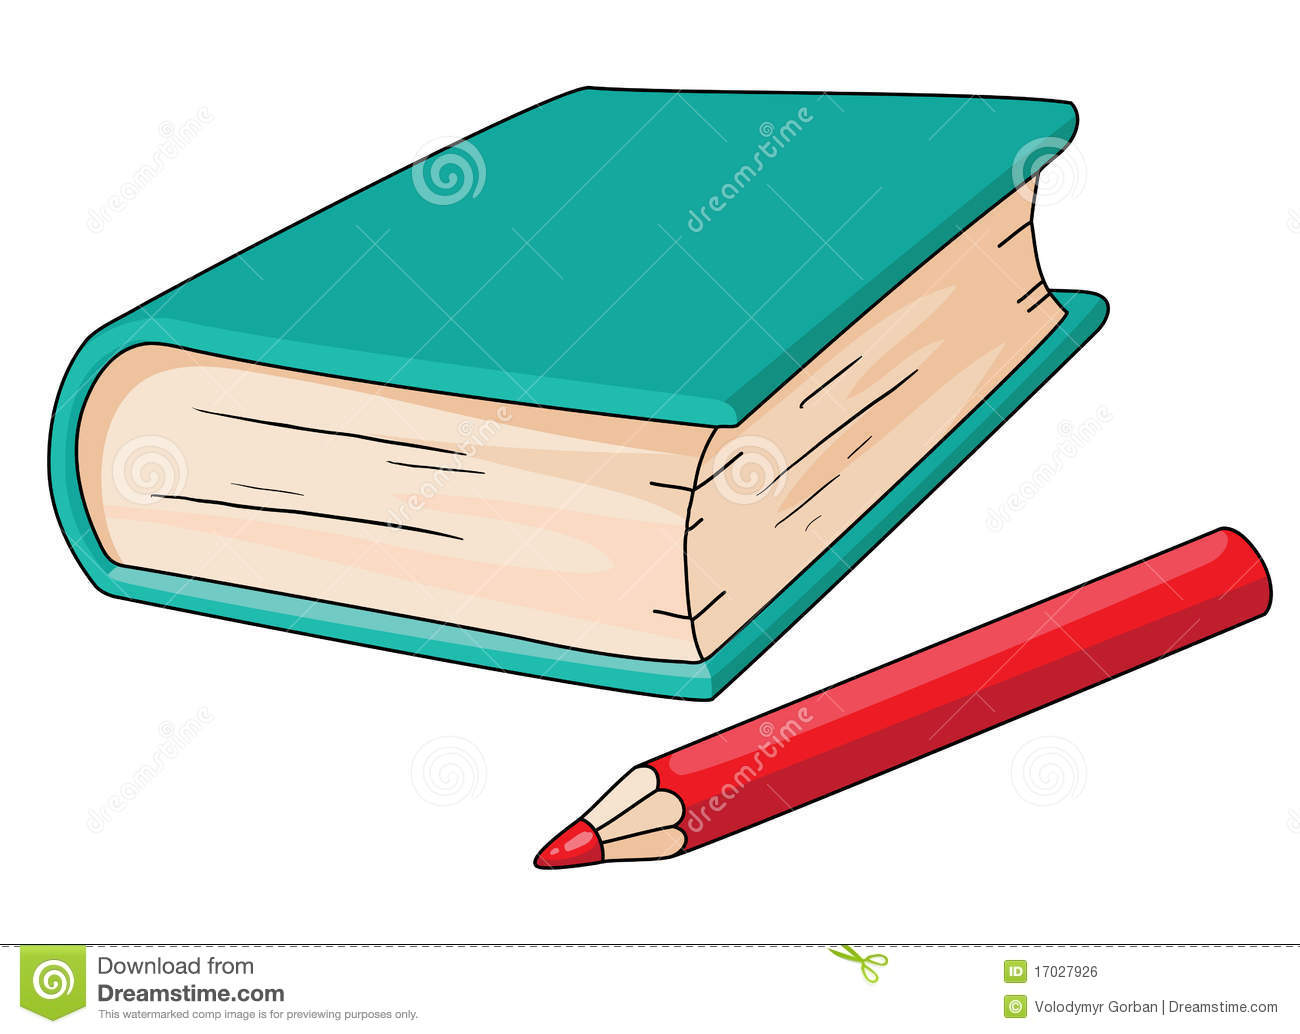 Book And Pencil Royalty Free Stock Image - Image: 17027926